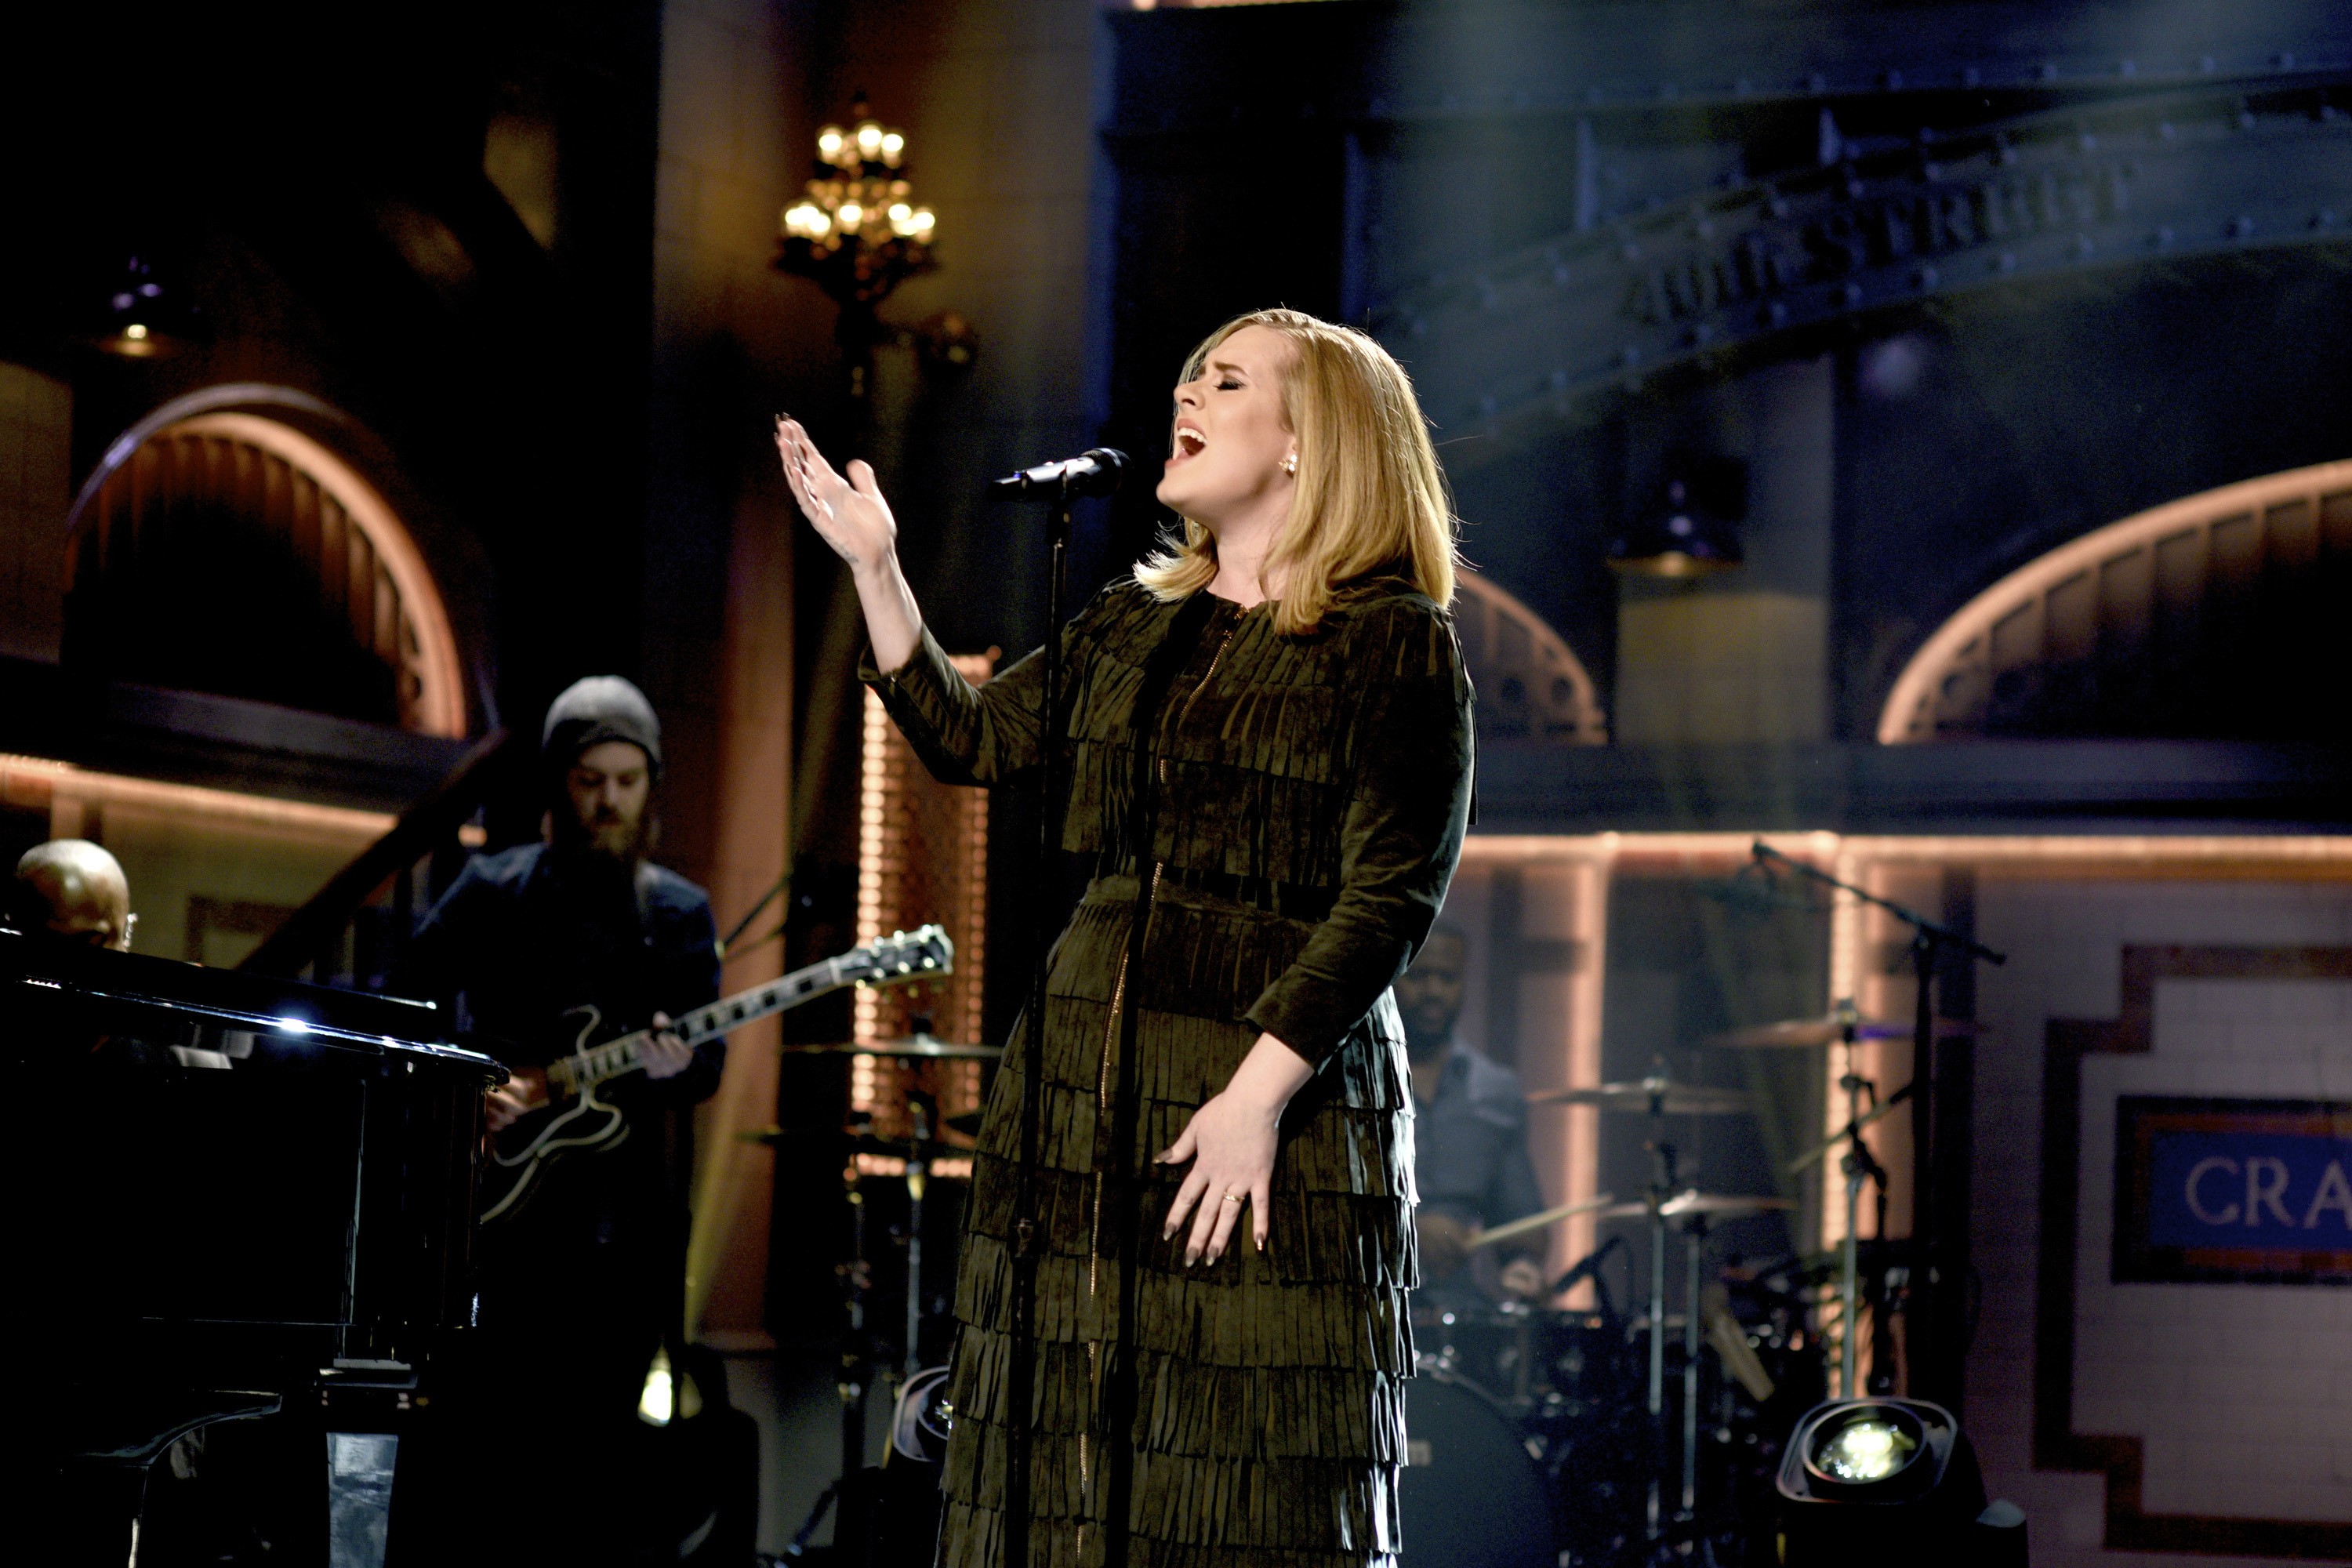 Musical guest Adele performs on Saturday Night Live in New York City on Nov. 21, 2015.